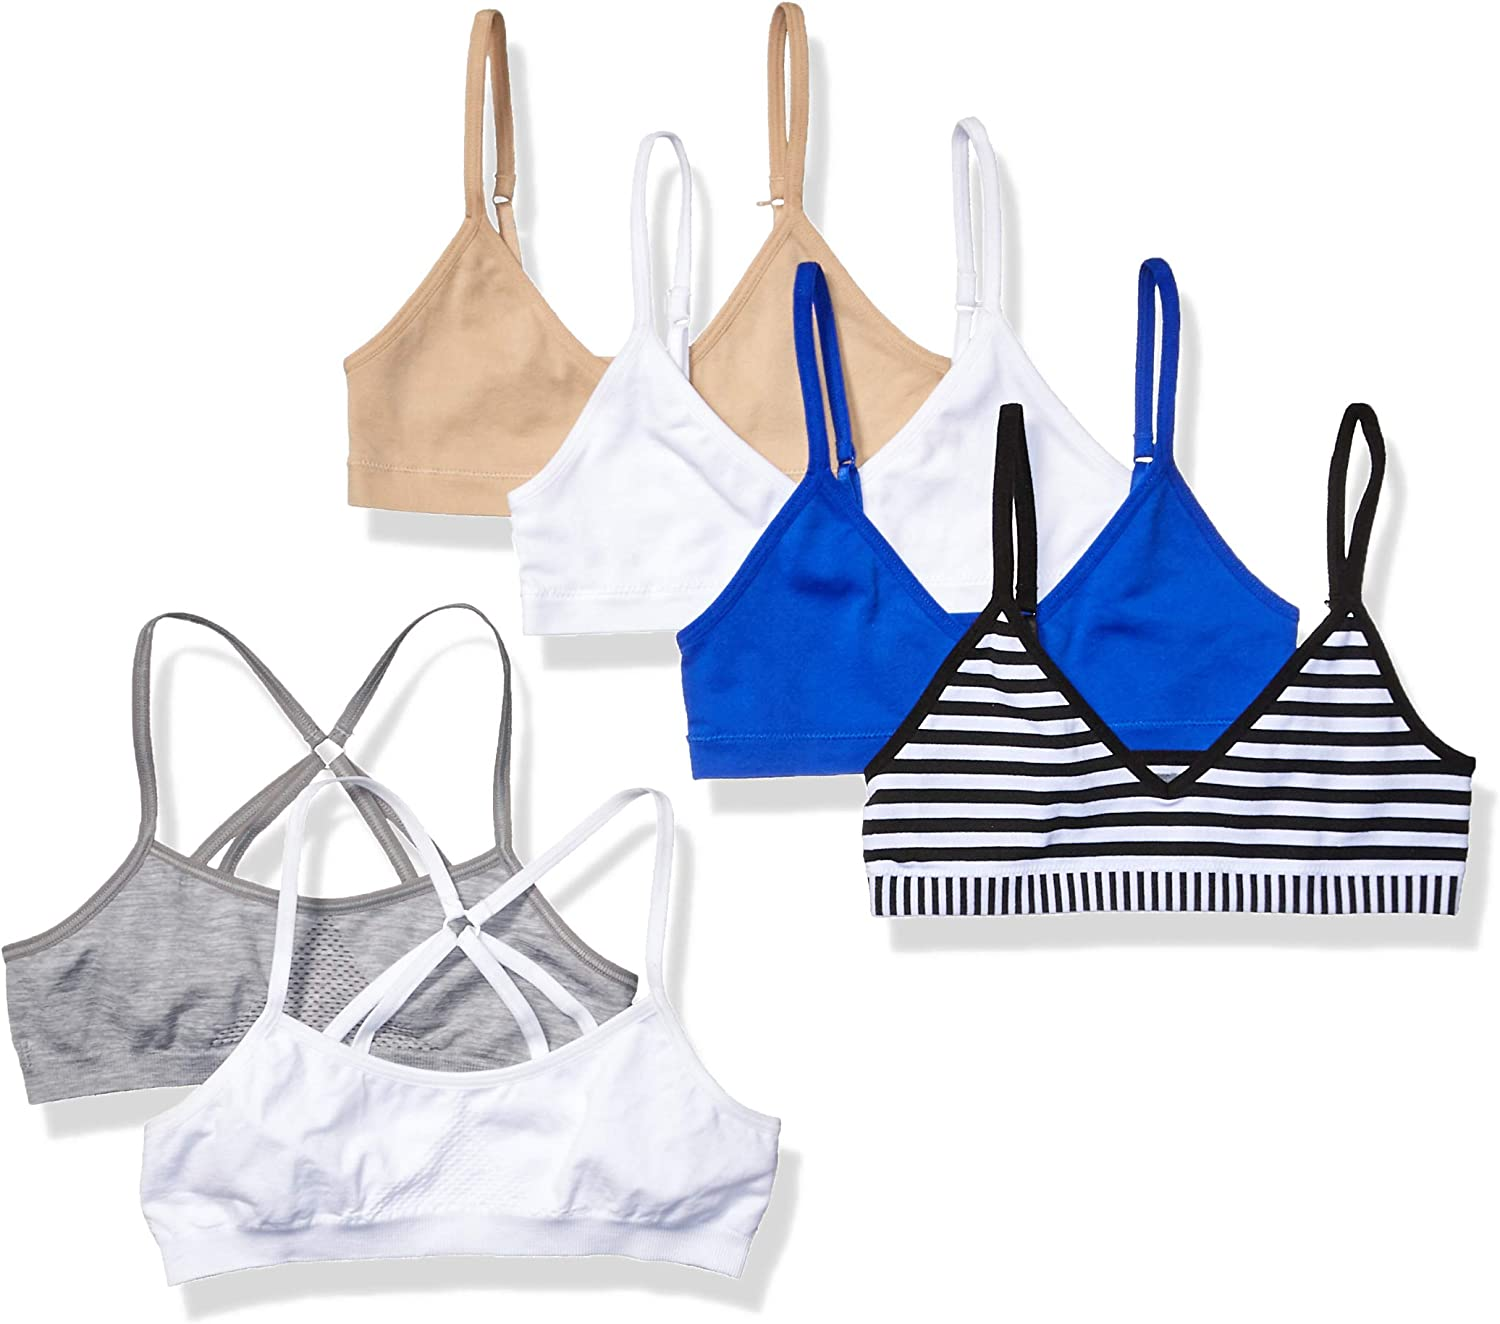 X-large assorted colors Pack of 2 Hanes Girls Crop Top Bralette